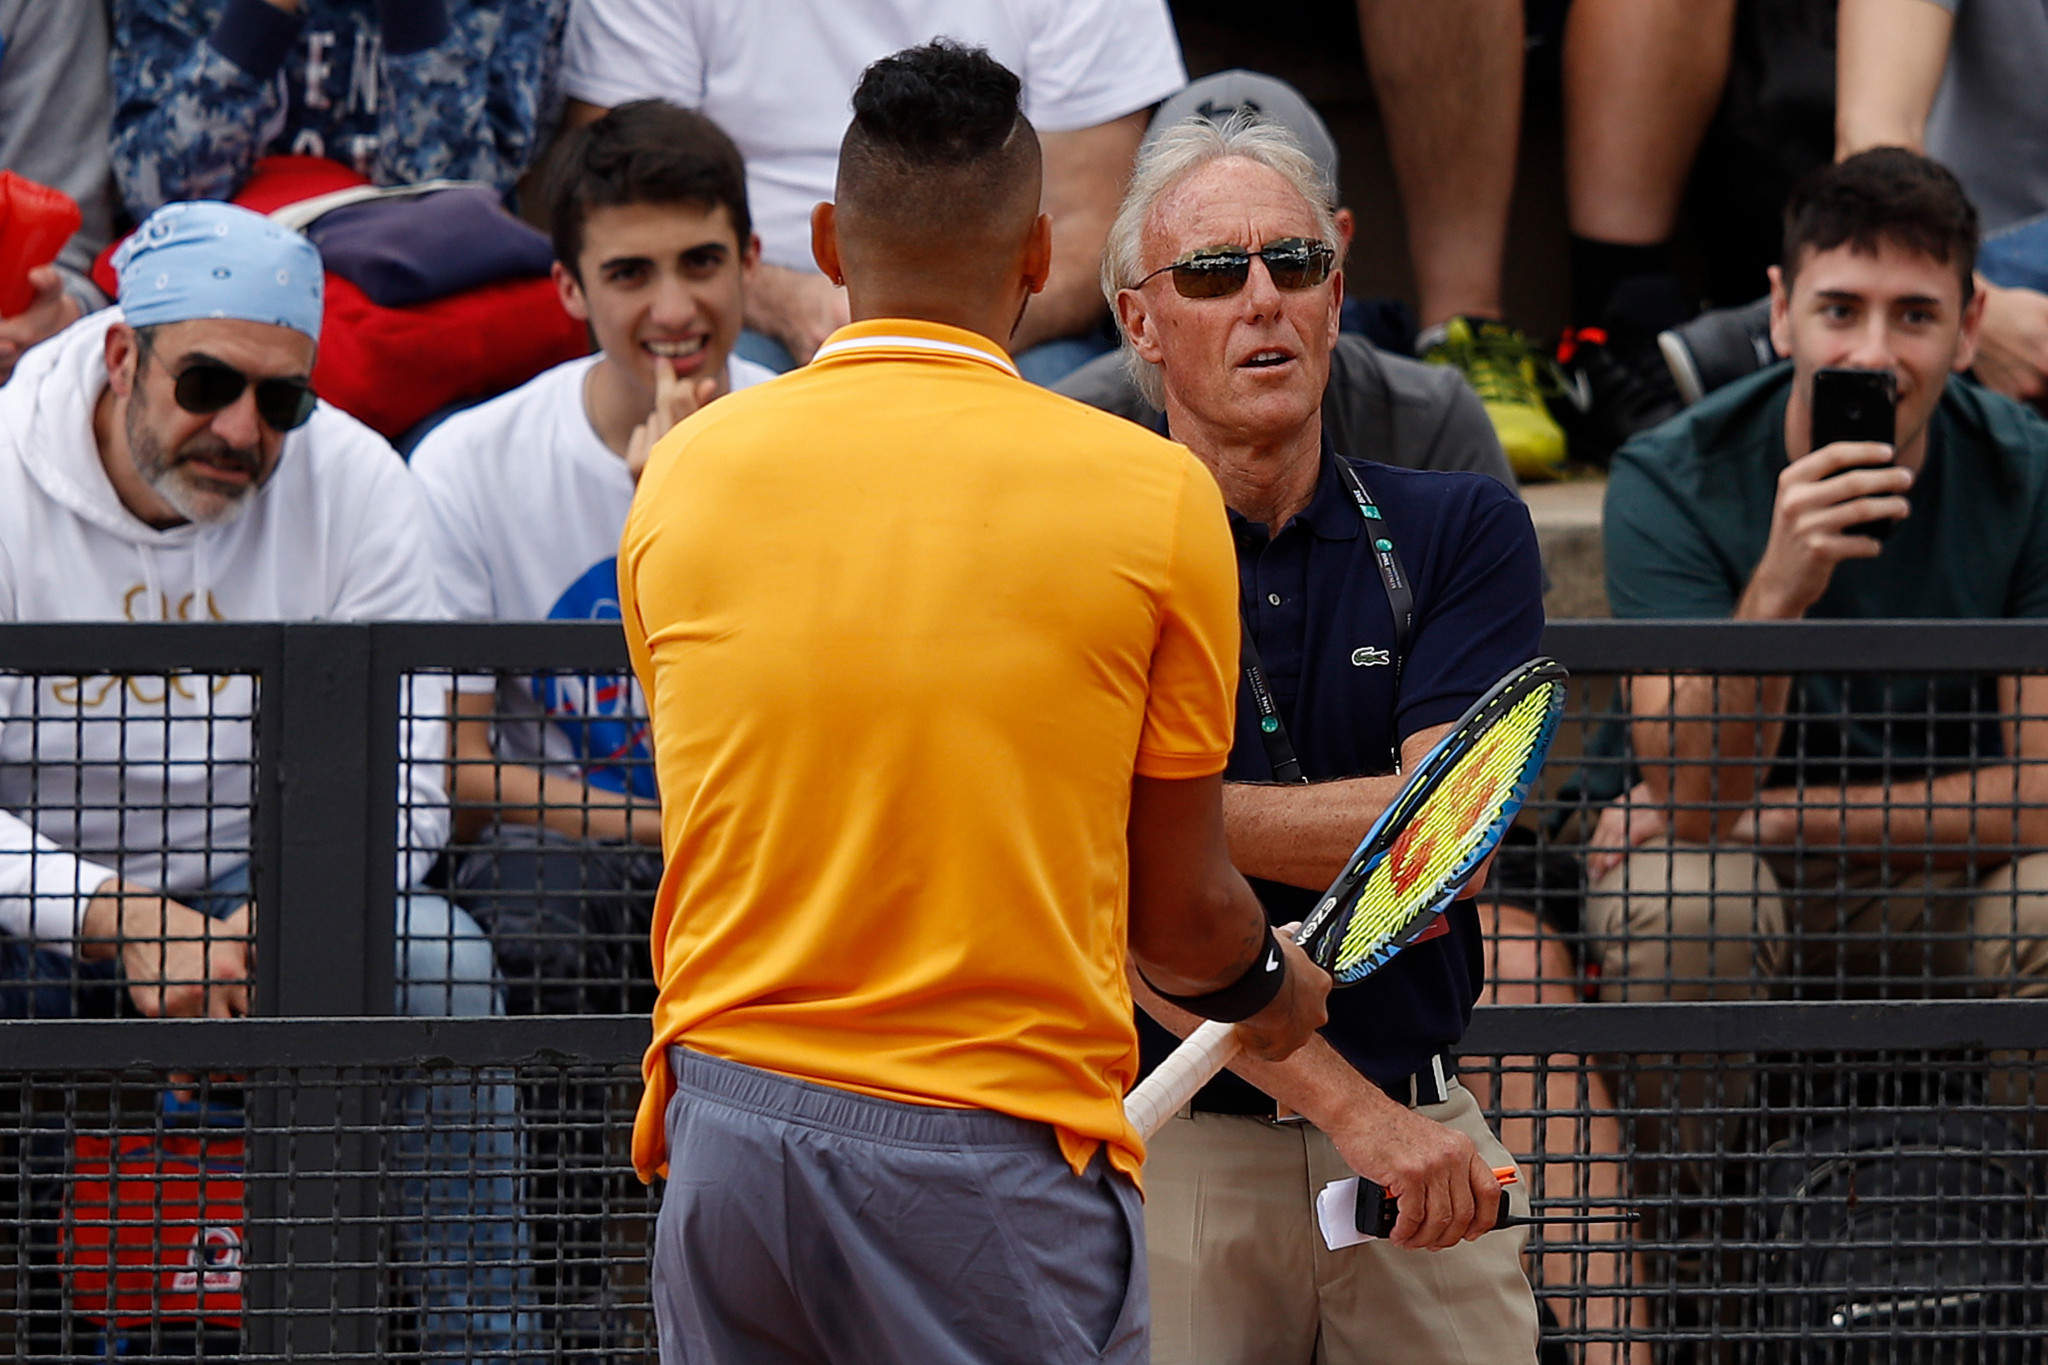 Australian Nick Kyrgios stole the headlines for the wrong reasons once again as he stormed off court at the Italian Open ©Getty Images